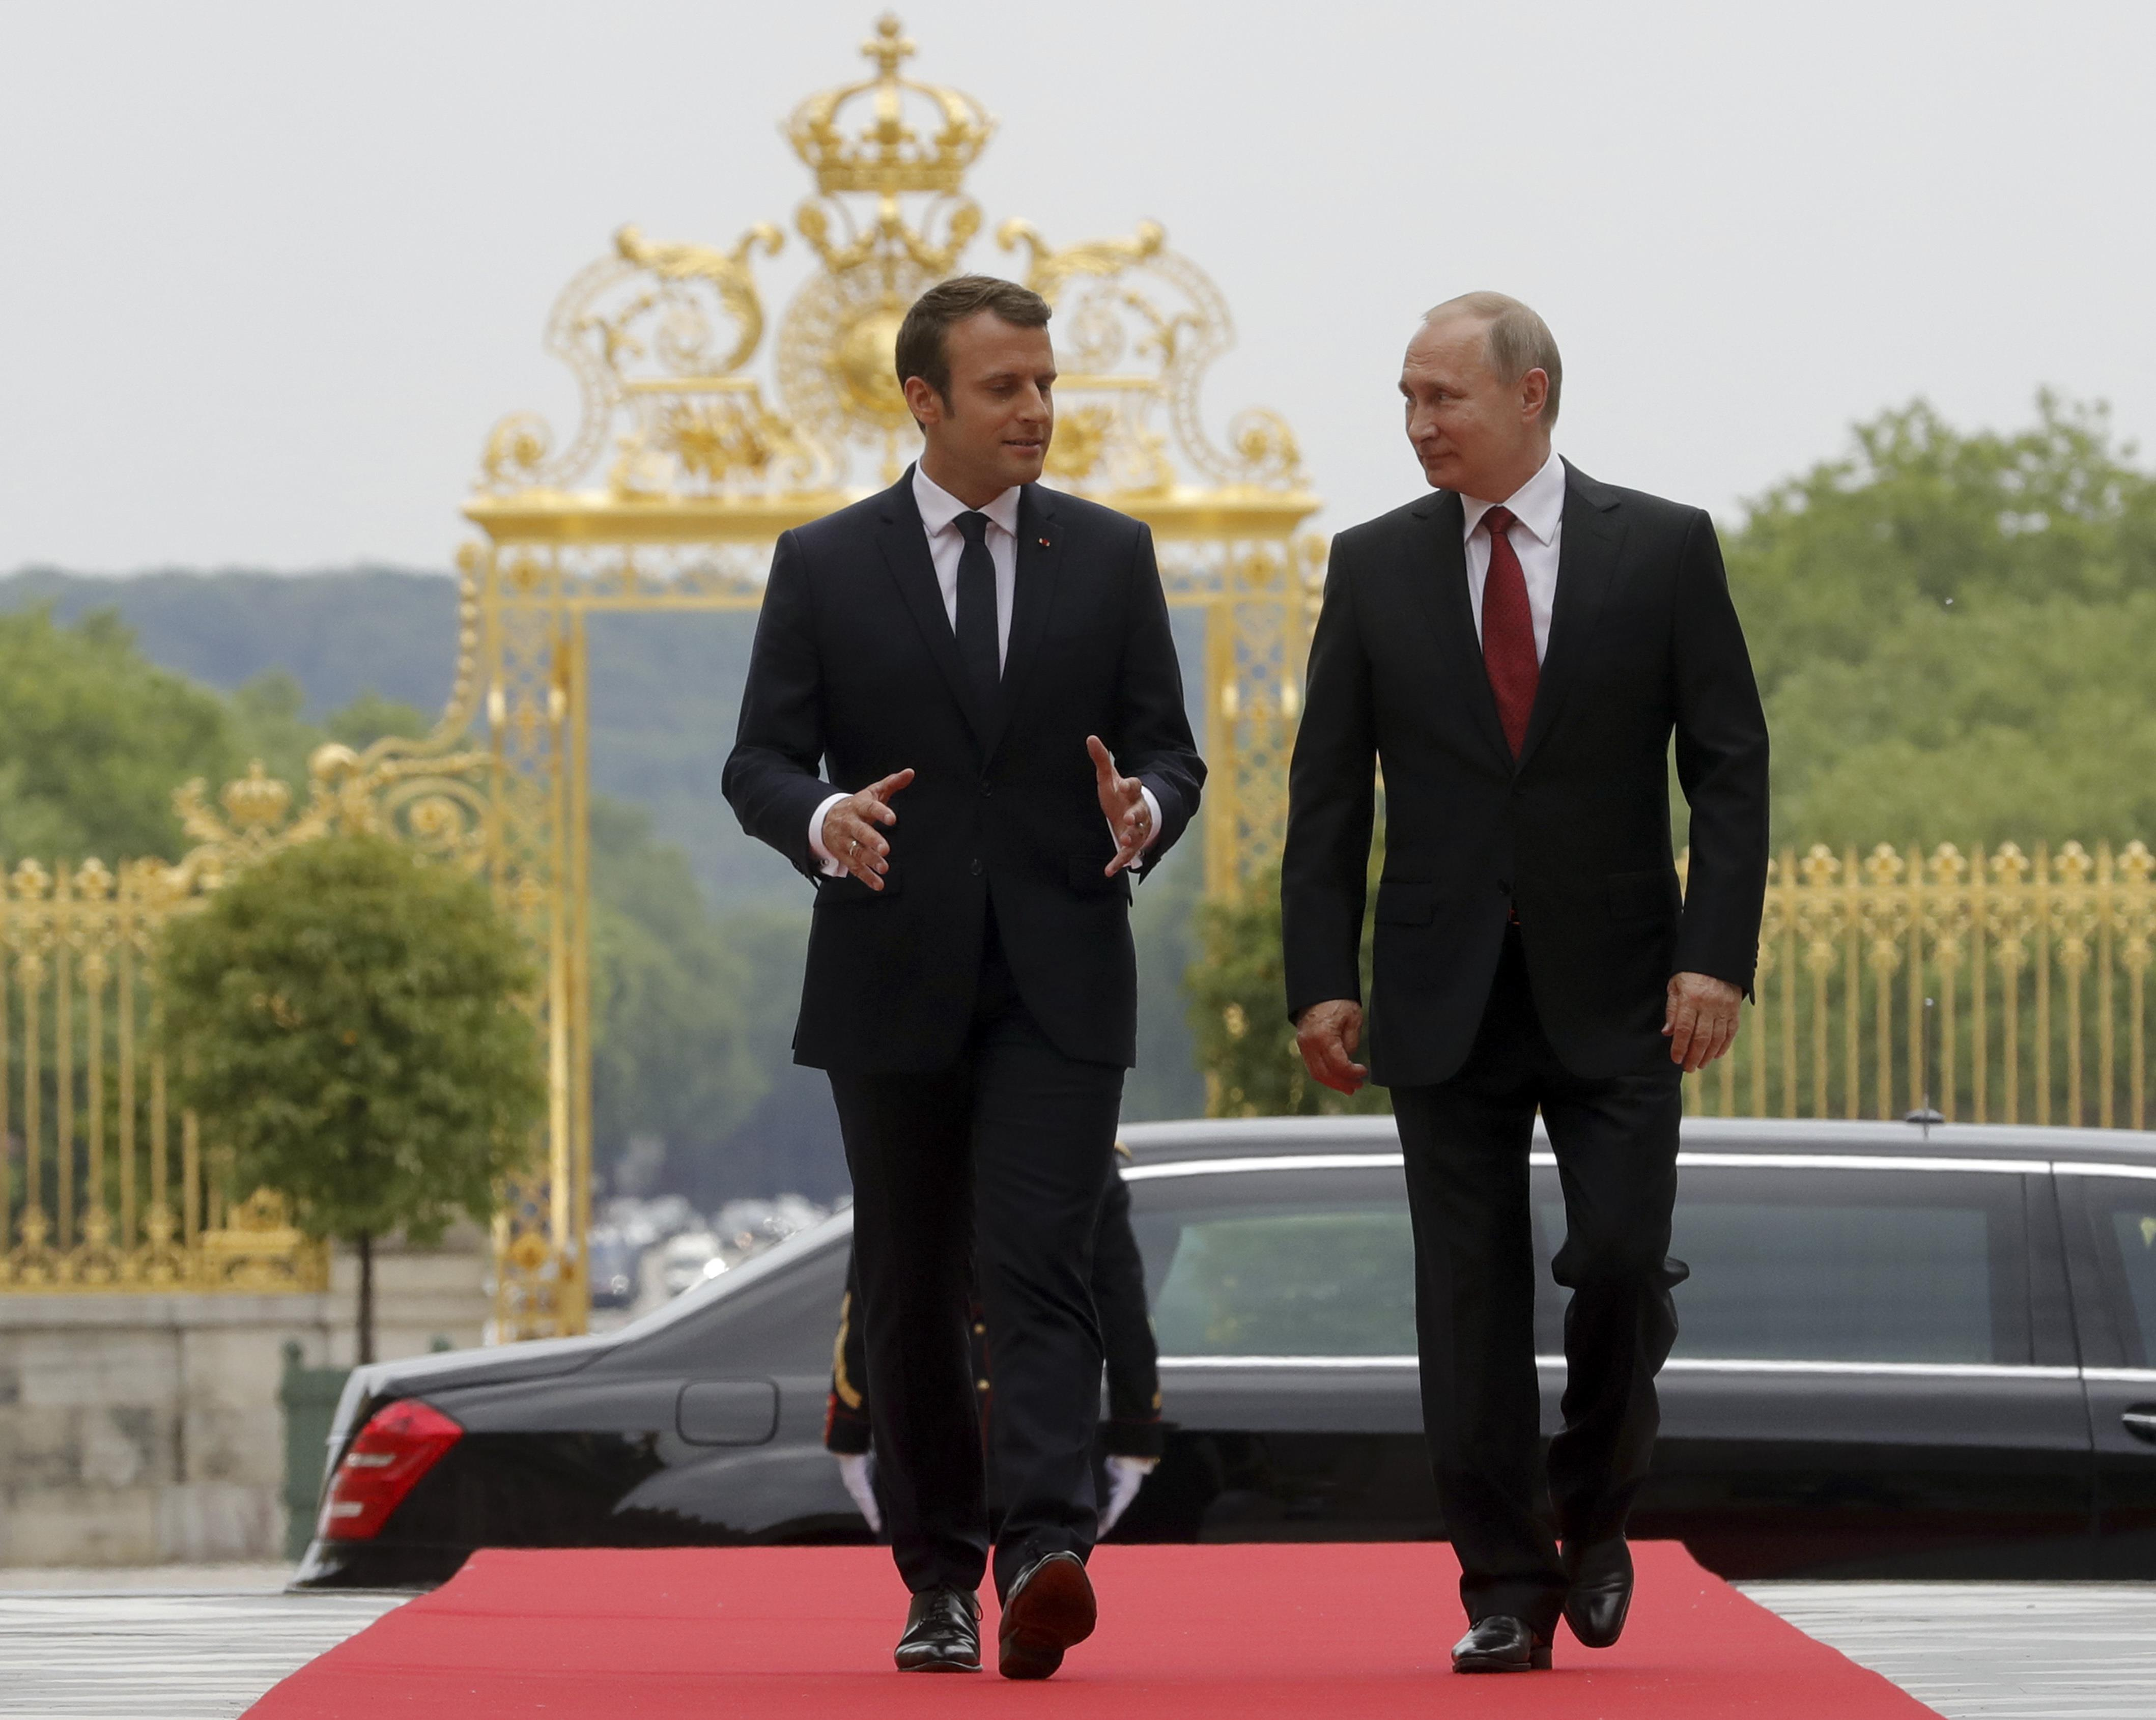 Russian President Vladimir Putin (R) and French President Emmanuel Macron during a meeting at the Chateau de Versailles near Paris, France on May 29, 2017. (Sputnik/Mikhail Metzel/Kremlin via REUTERS)